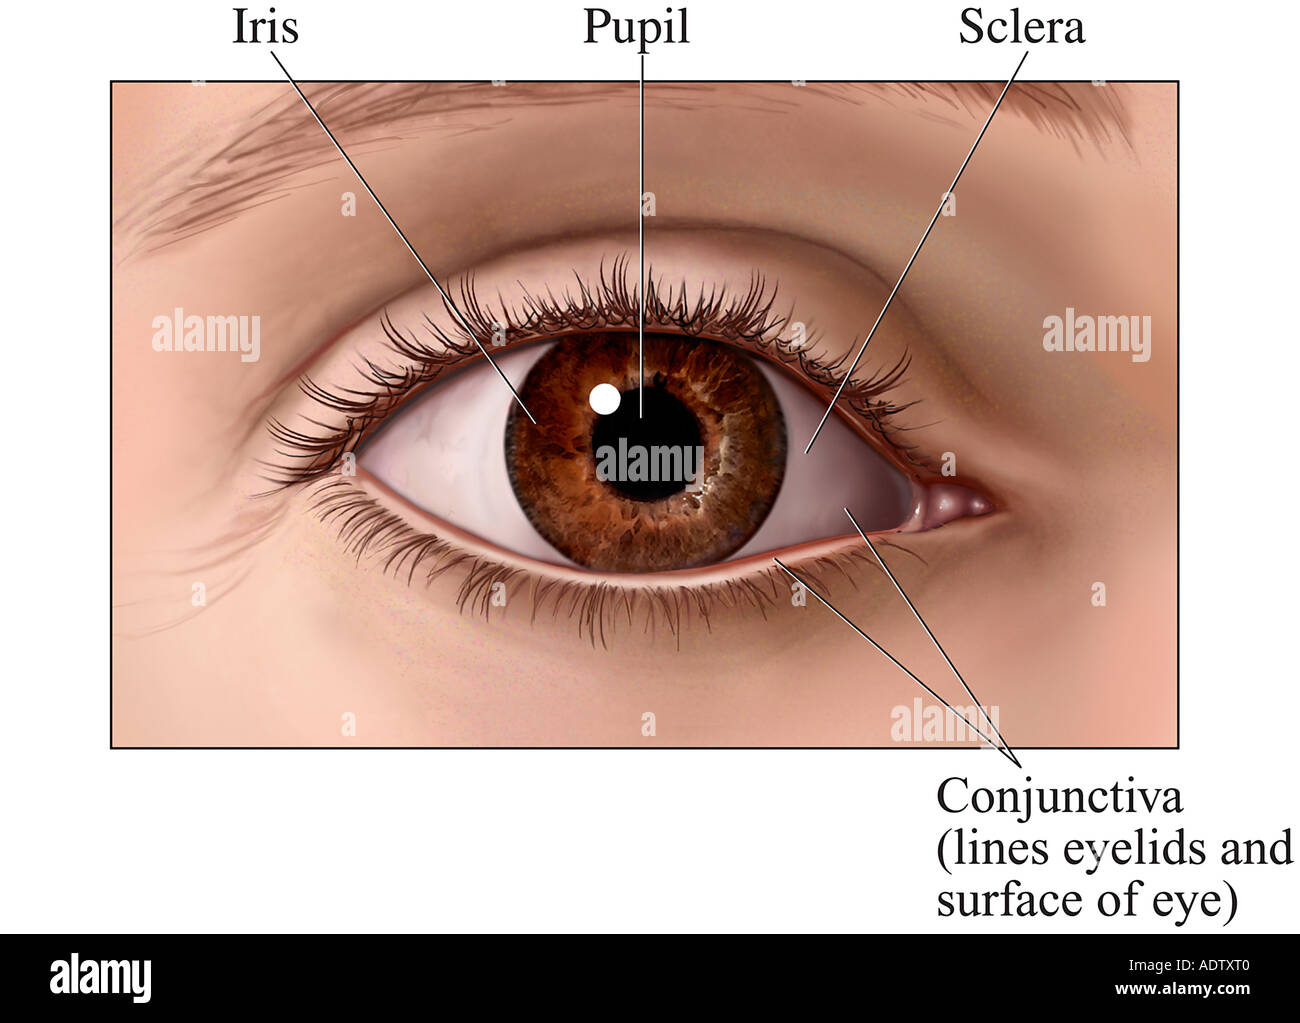 Anterior Front View Of The Eye Stock Photo